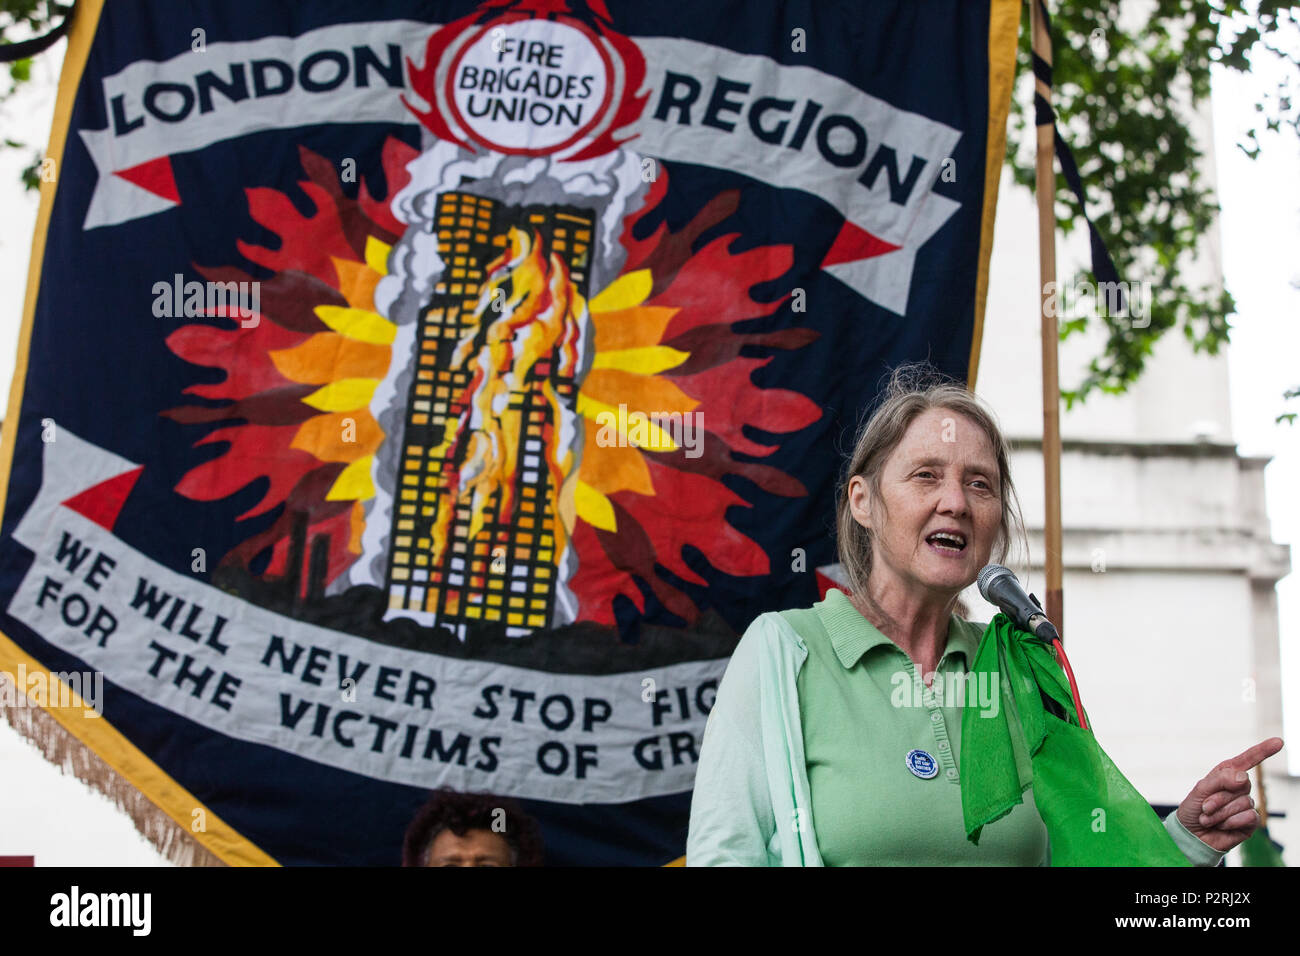 London, UK. 16th June, 2018. Eileen Short of Defend Council Housing addresses the Justice for Grenfell solidarity rally outside Downing Street organised by Justice4Grenfell and the Fire Brigades Union two days after the first anniversary of the Grenfell Tower fire during which 72 people died and over 70 were injured. - Stock Image